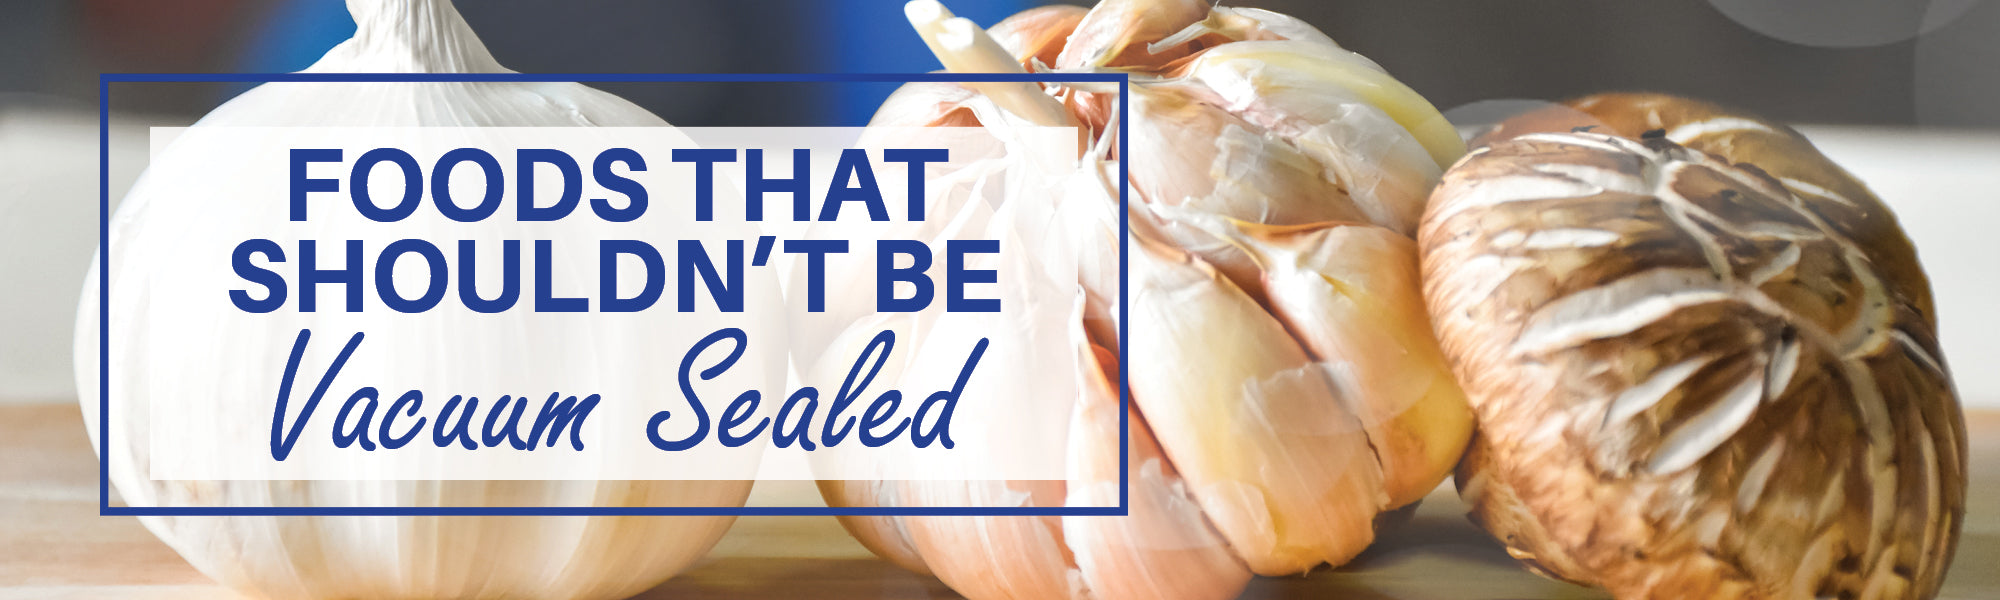 Foods That Should Not Be Vacuum Sealed